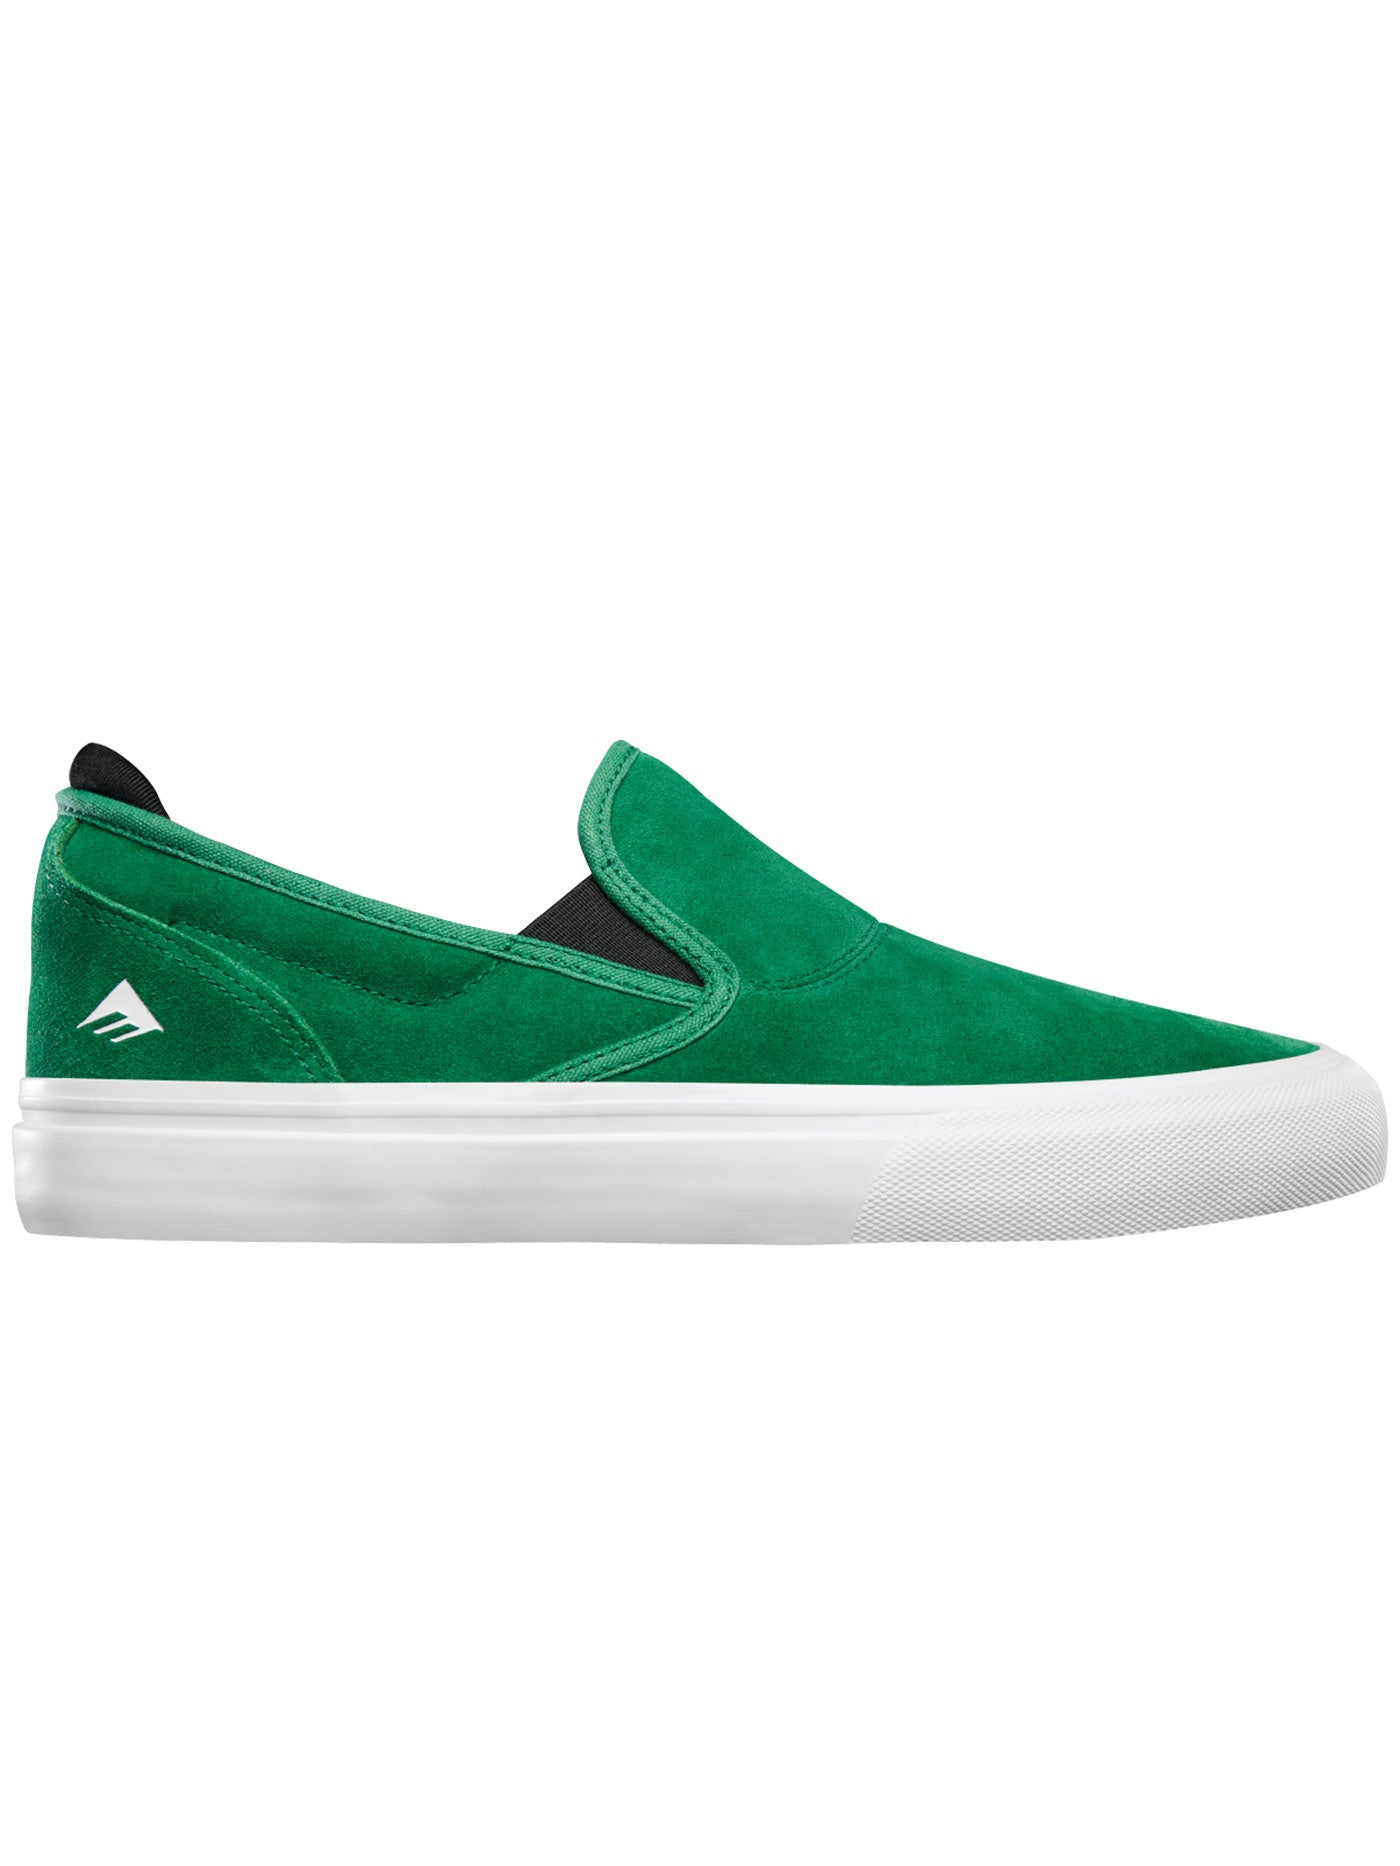 GREEN/WHITE/BLACK (315)